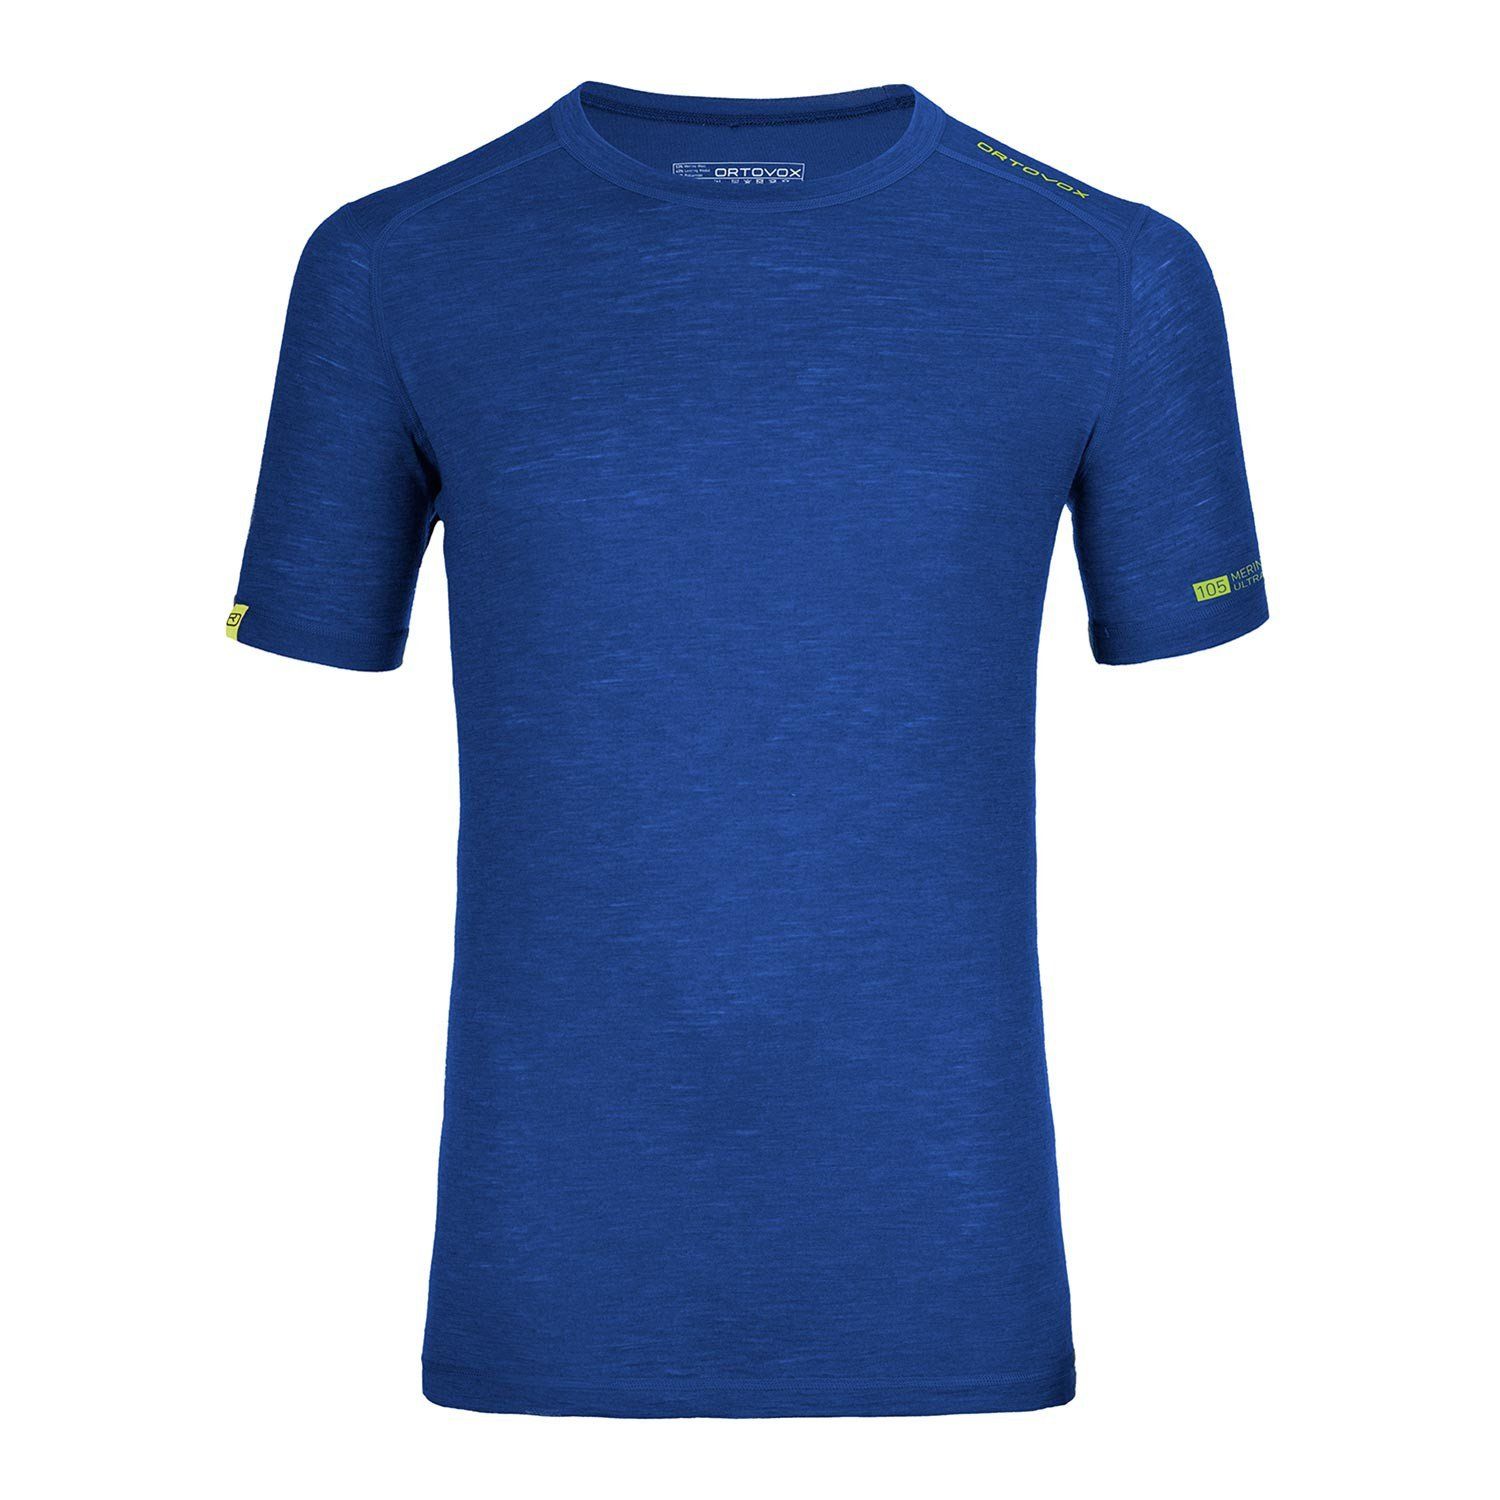 Ortovox Ultra 105 Short Sleeve Shirt - strong blue